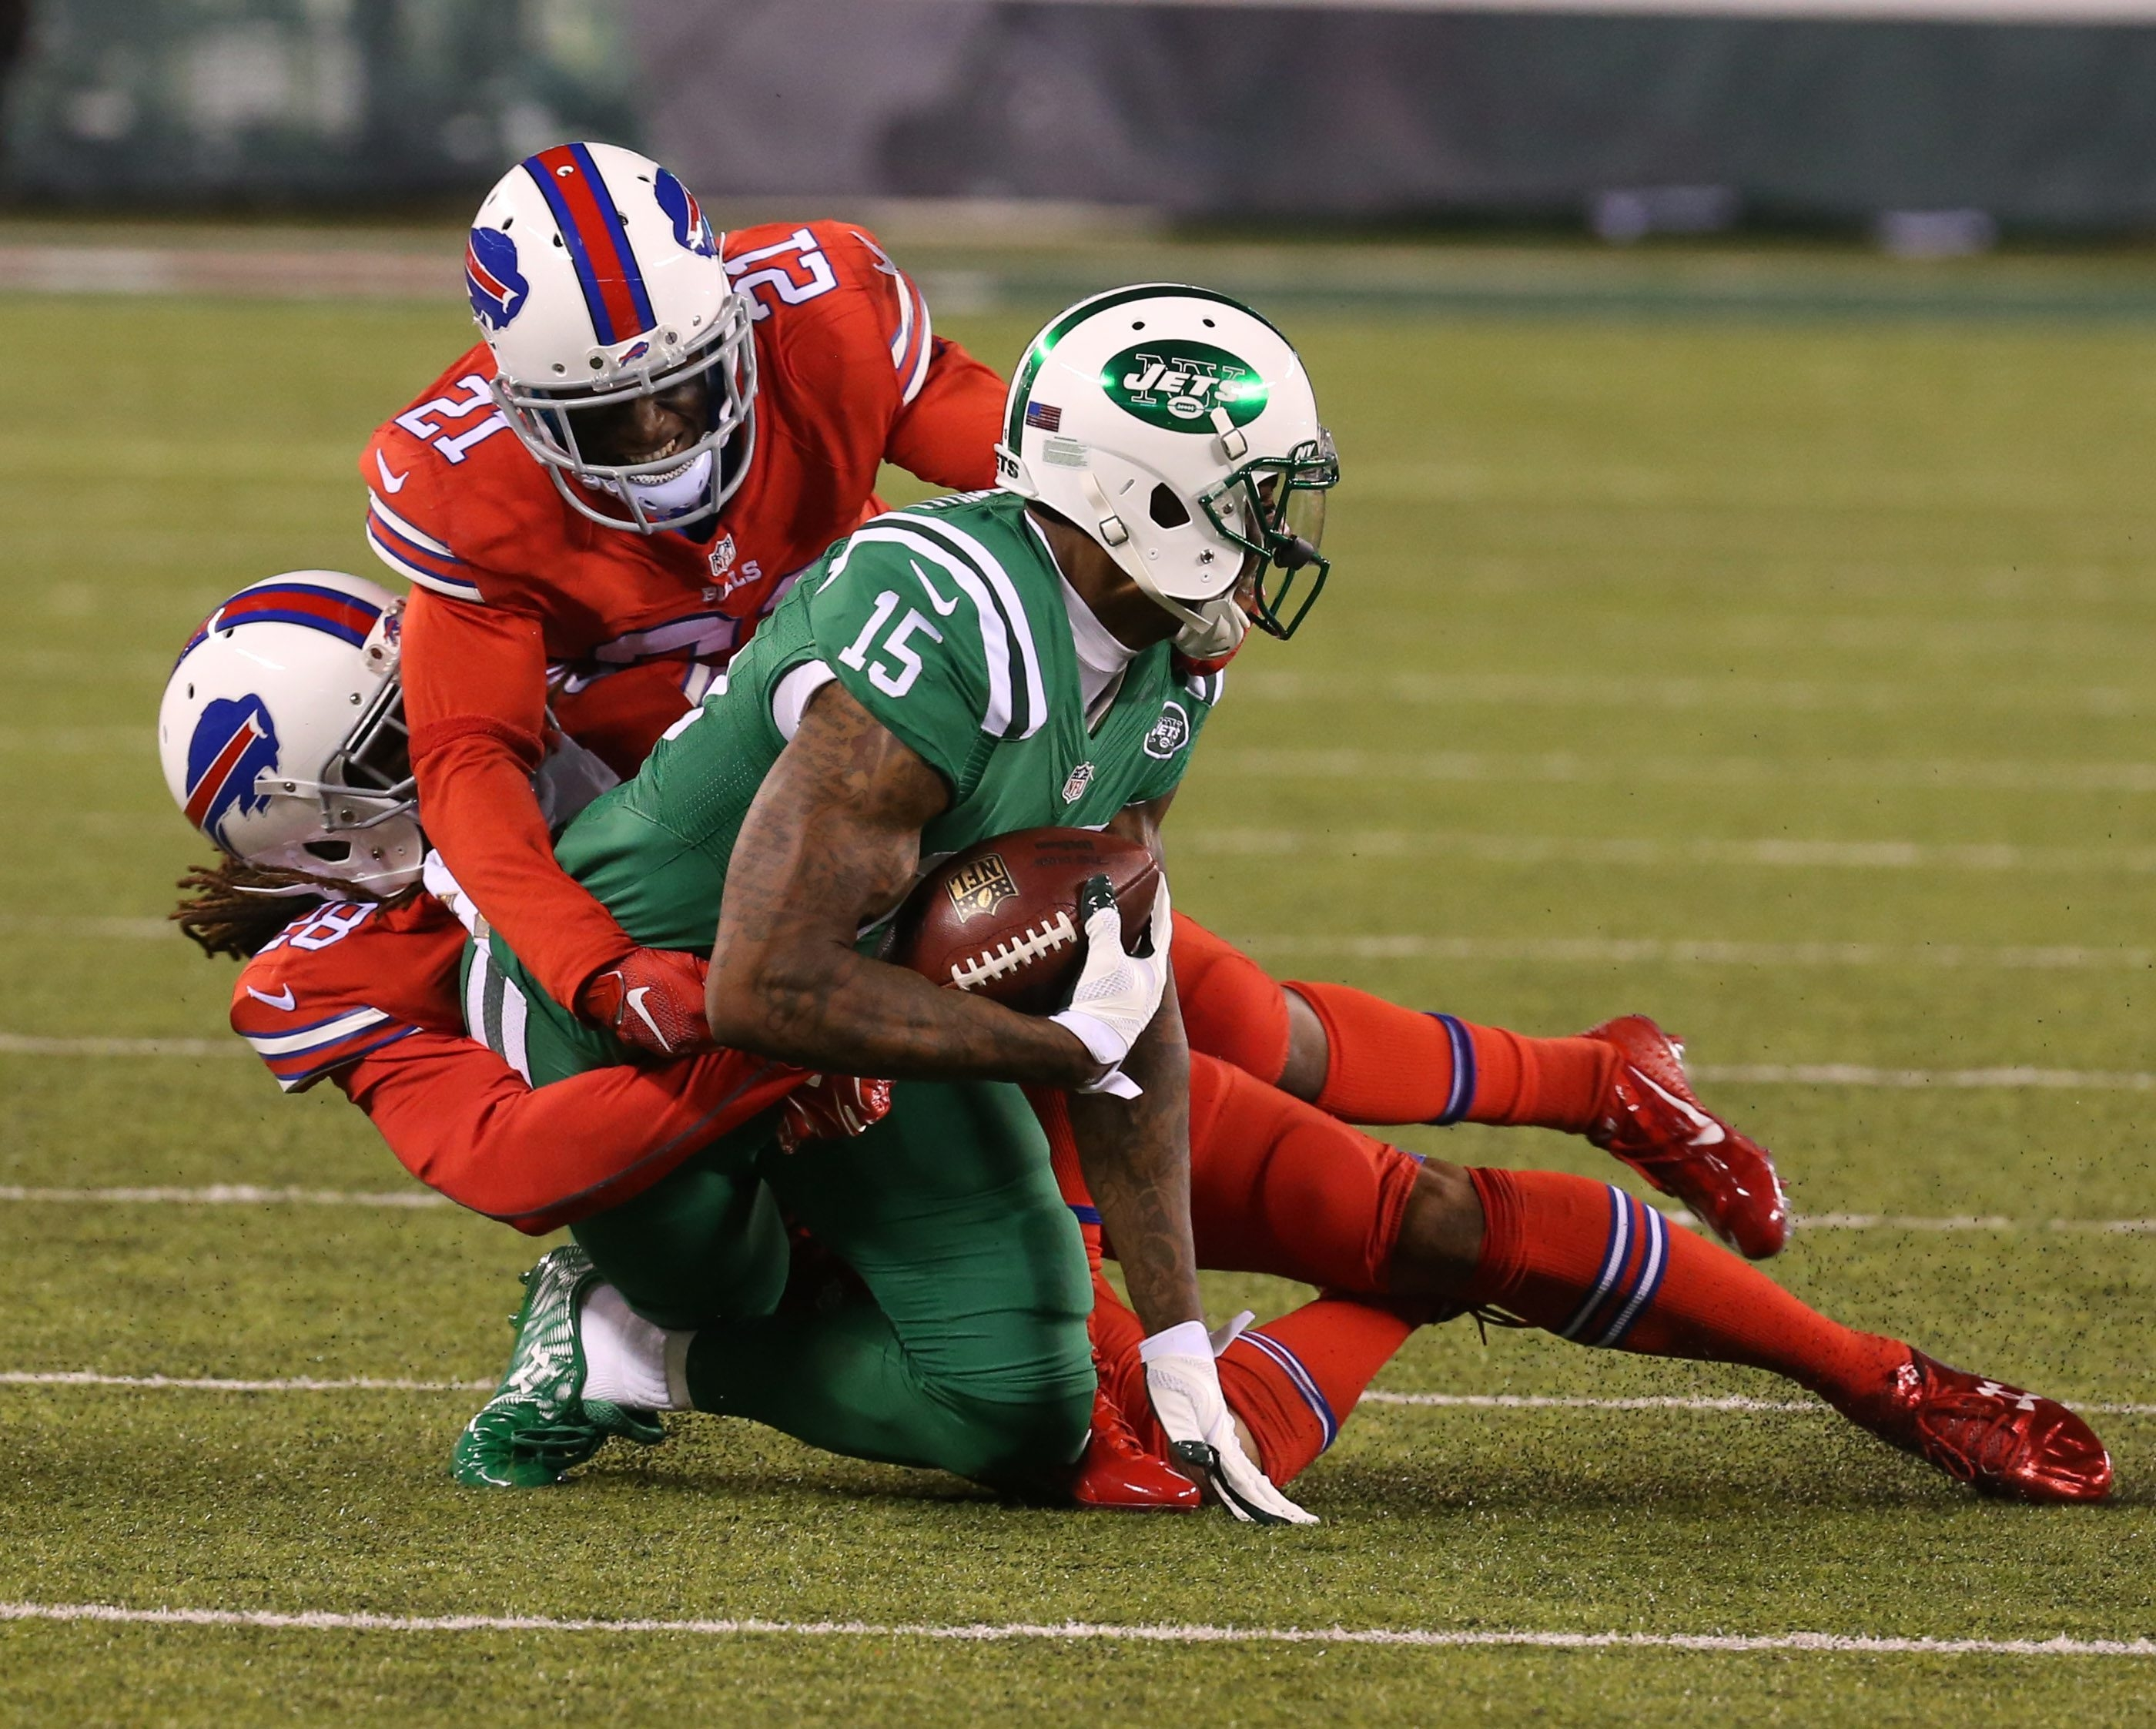 Bills cornerbacks Leodis McKelvin (21) and Ronald Darby bring down Jets receiver Brandon Marshall in their first meeting on Nov. 12. With Stephon Gilmore injured, McKelvin and Darby will start Sunday.